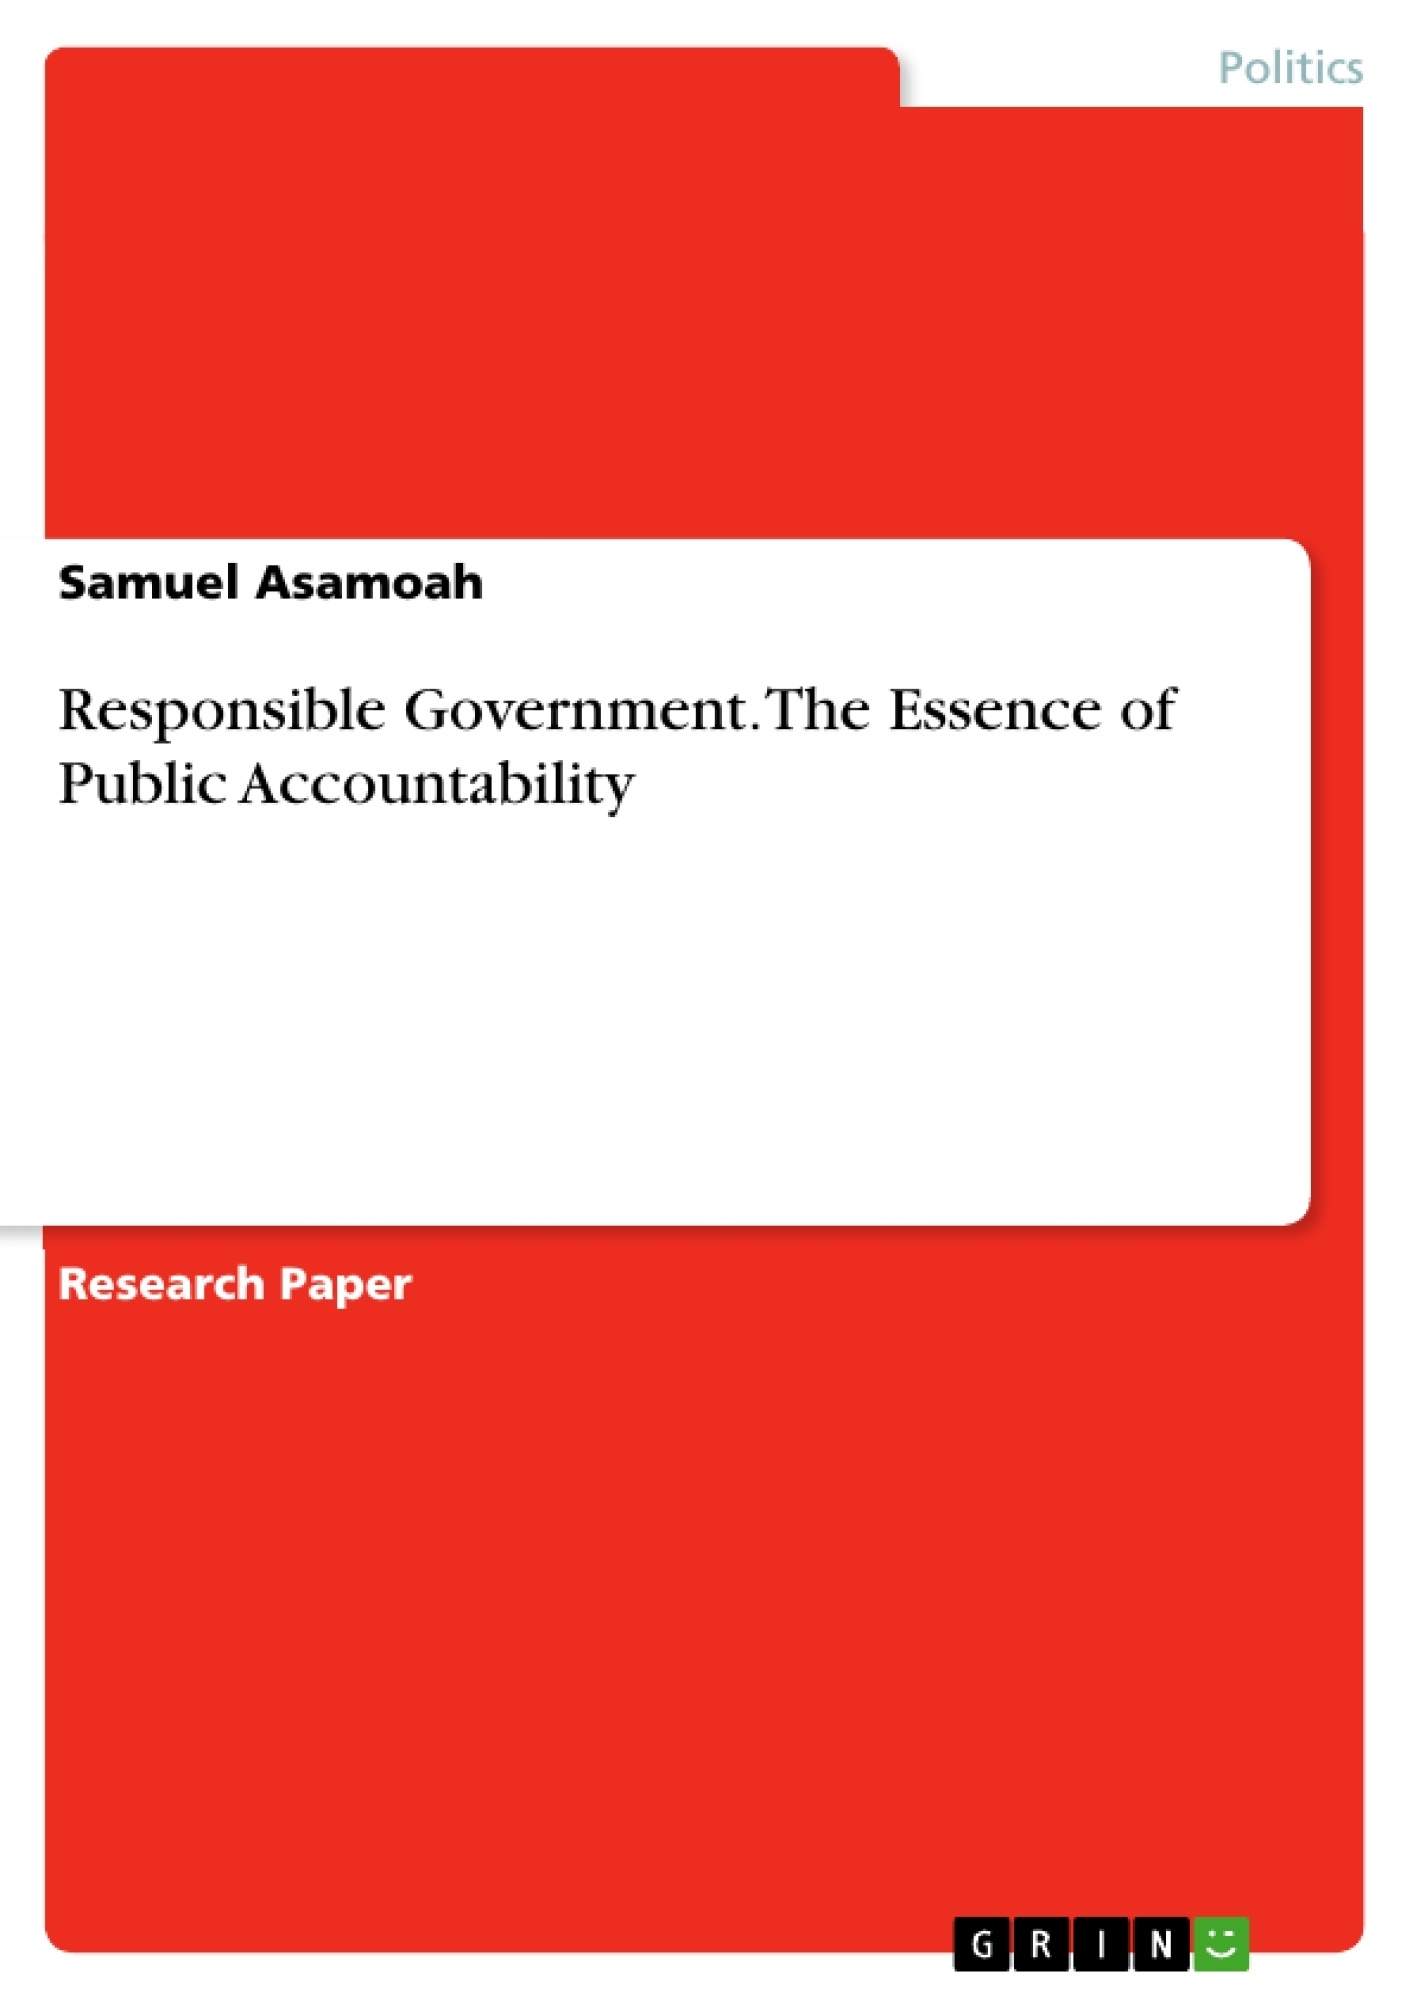 Title: Responsible Government. The Essence of Public Accountability